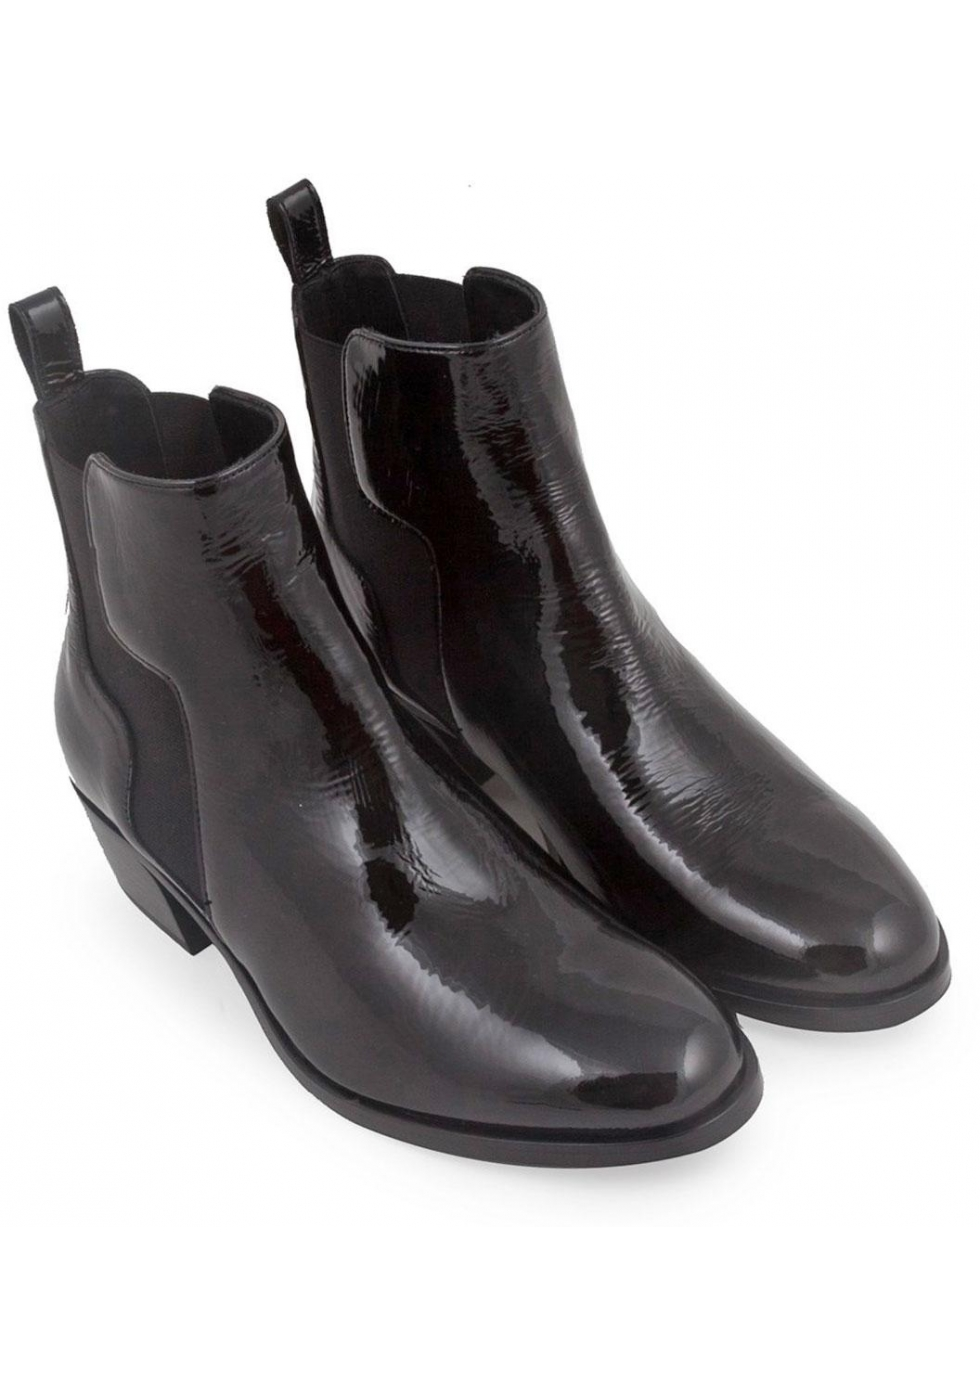 Pierre Hardy Women S Ankle Boots In Black Patent Leather